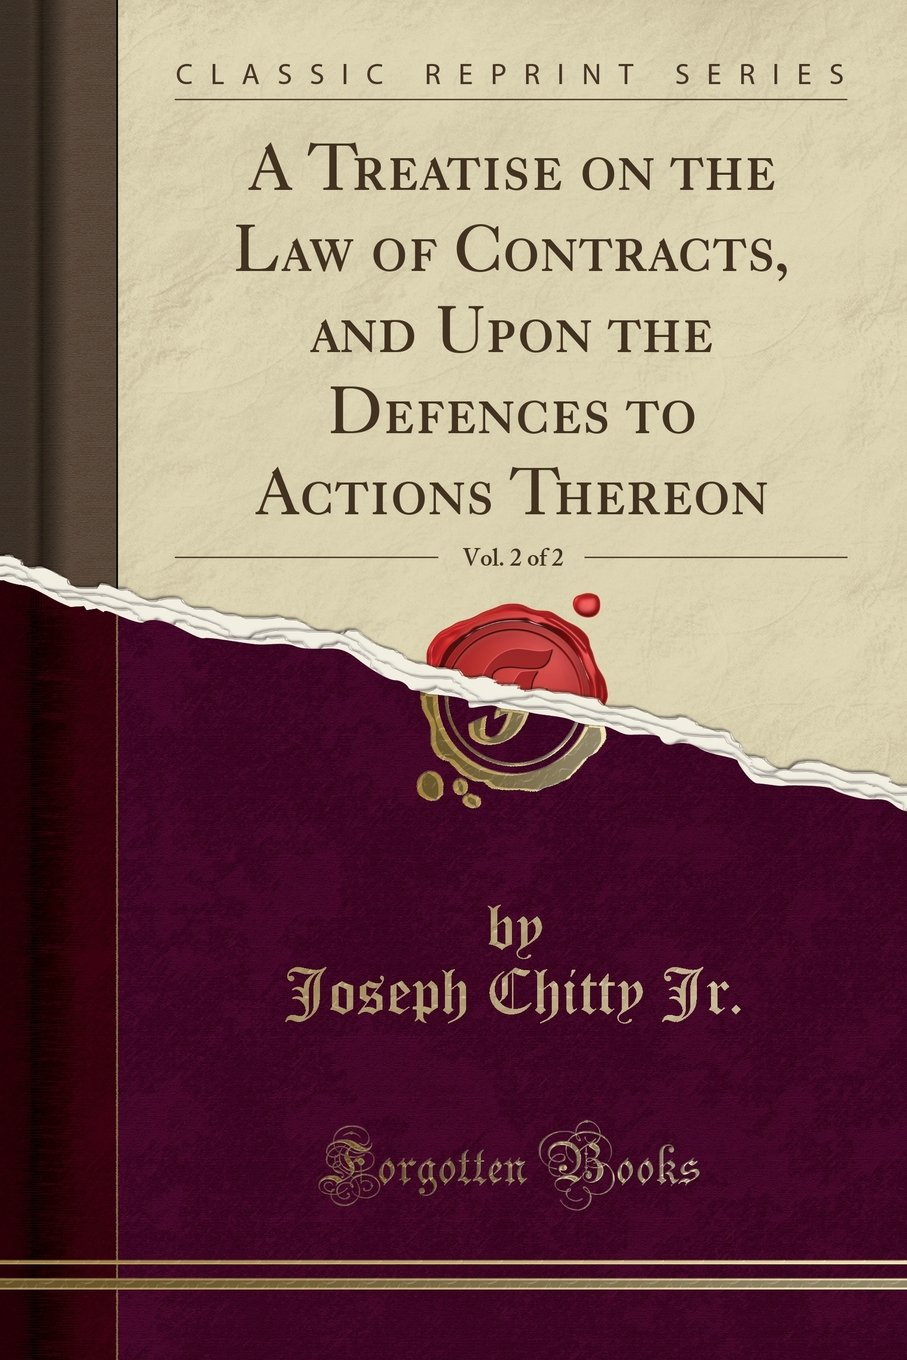 A Treatise on the Law of Contracts, and Upon the Defences to Actions Thereon, Vol. 2 of 2 (Classic Reprint) pdf epub